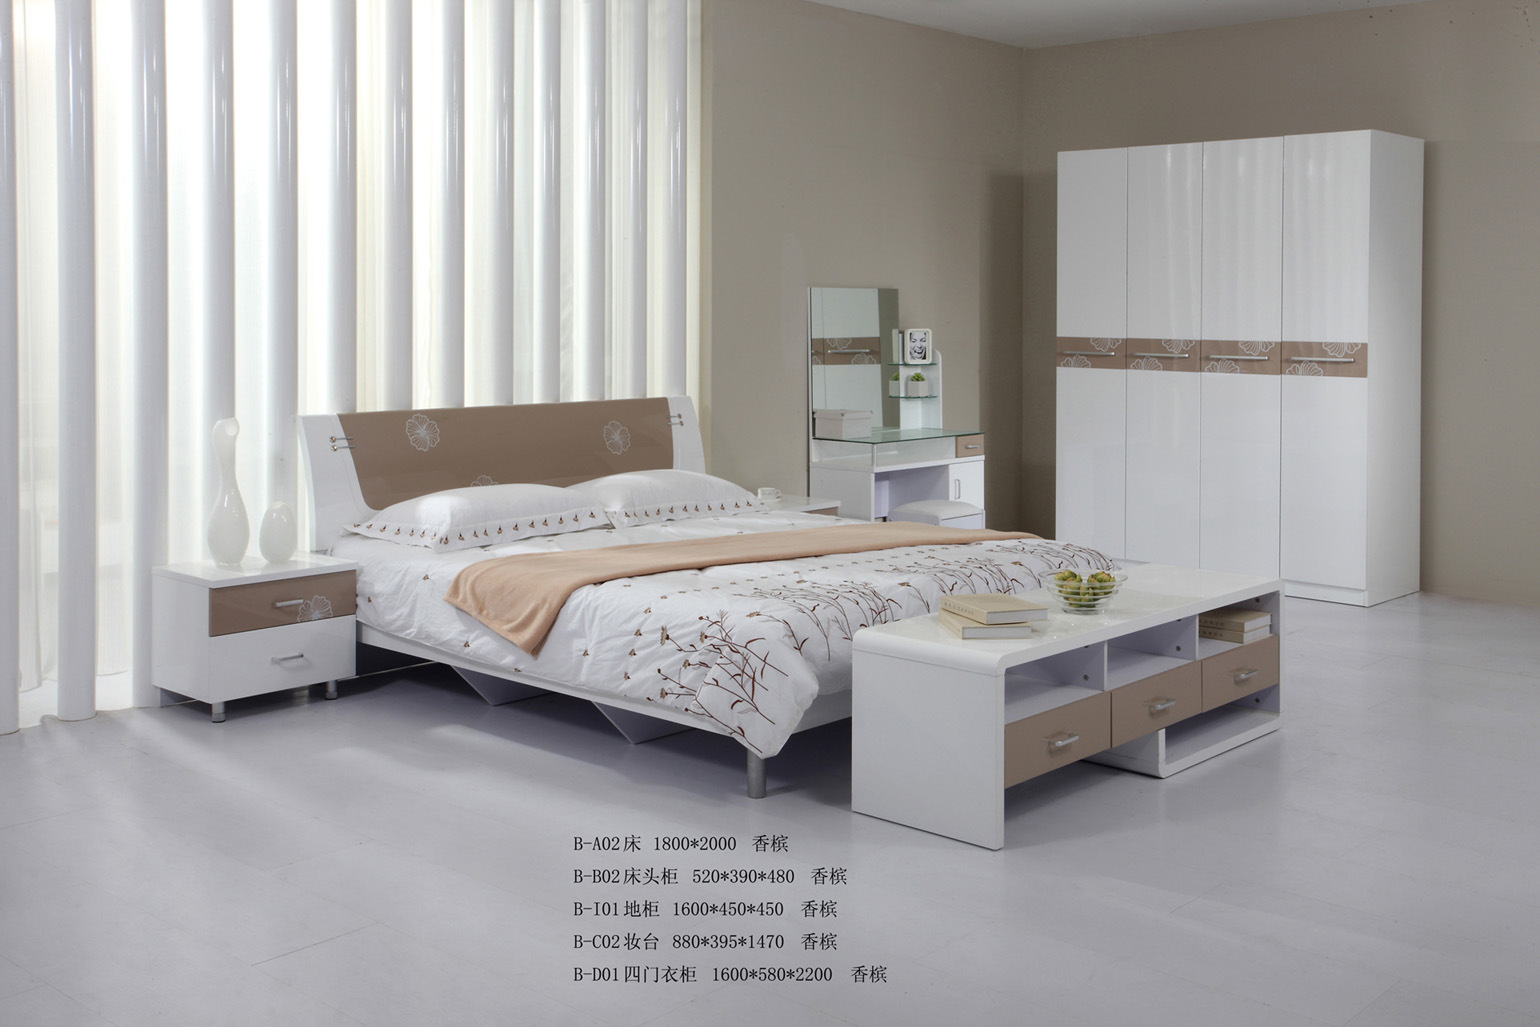 Bedroom Furniture White Shine B - HomesChannel.